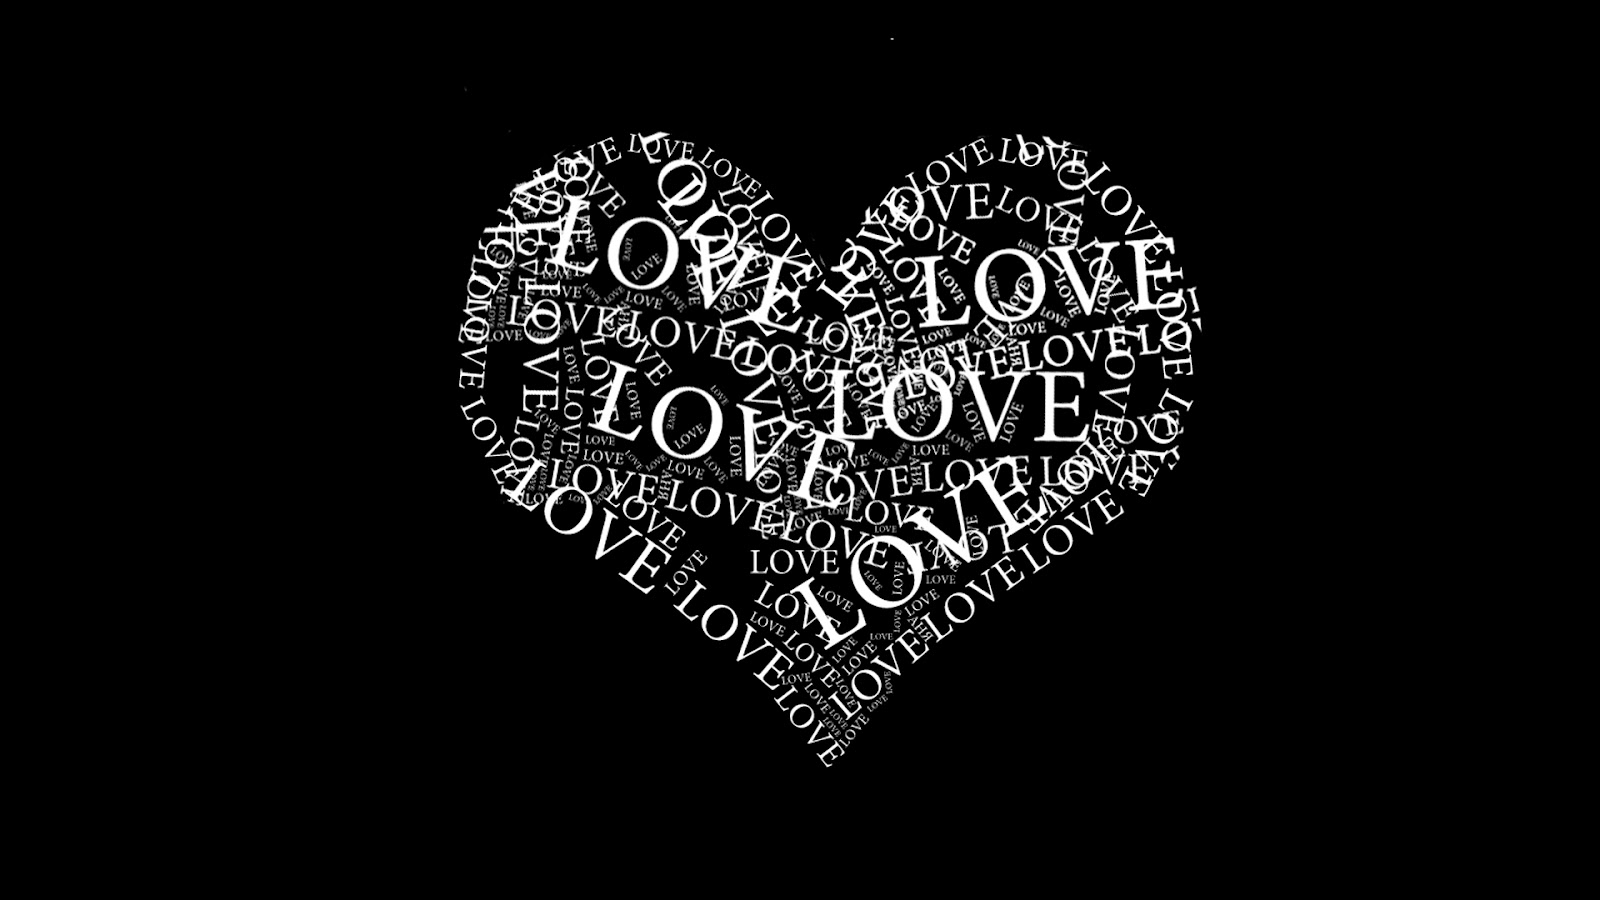 43 wallpaper with written words on wallpapersafari - Black and white love pictures ...